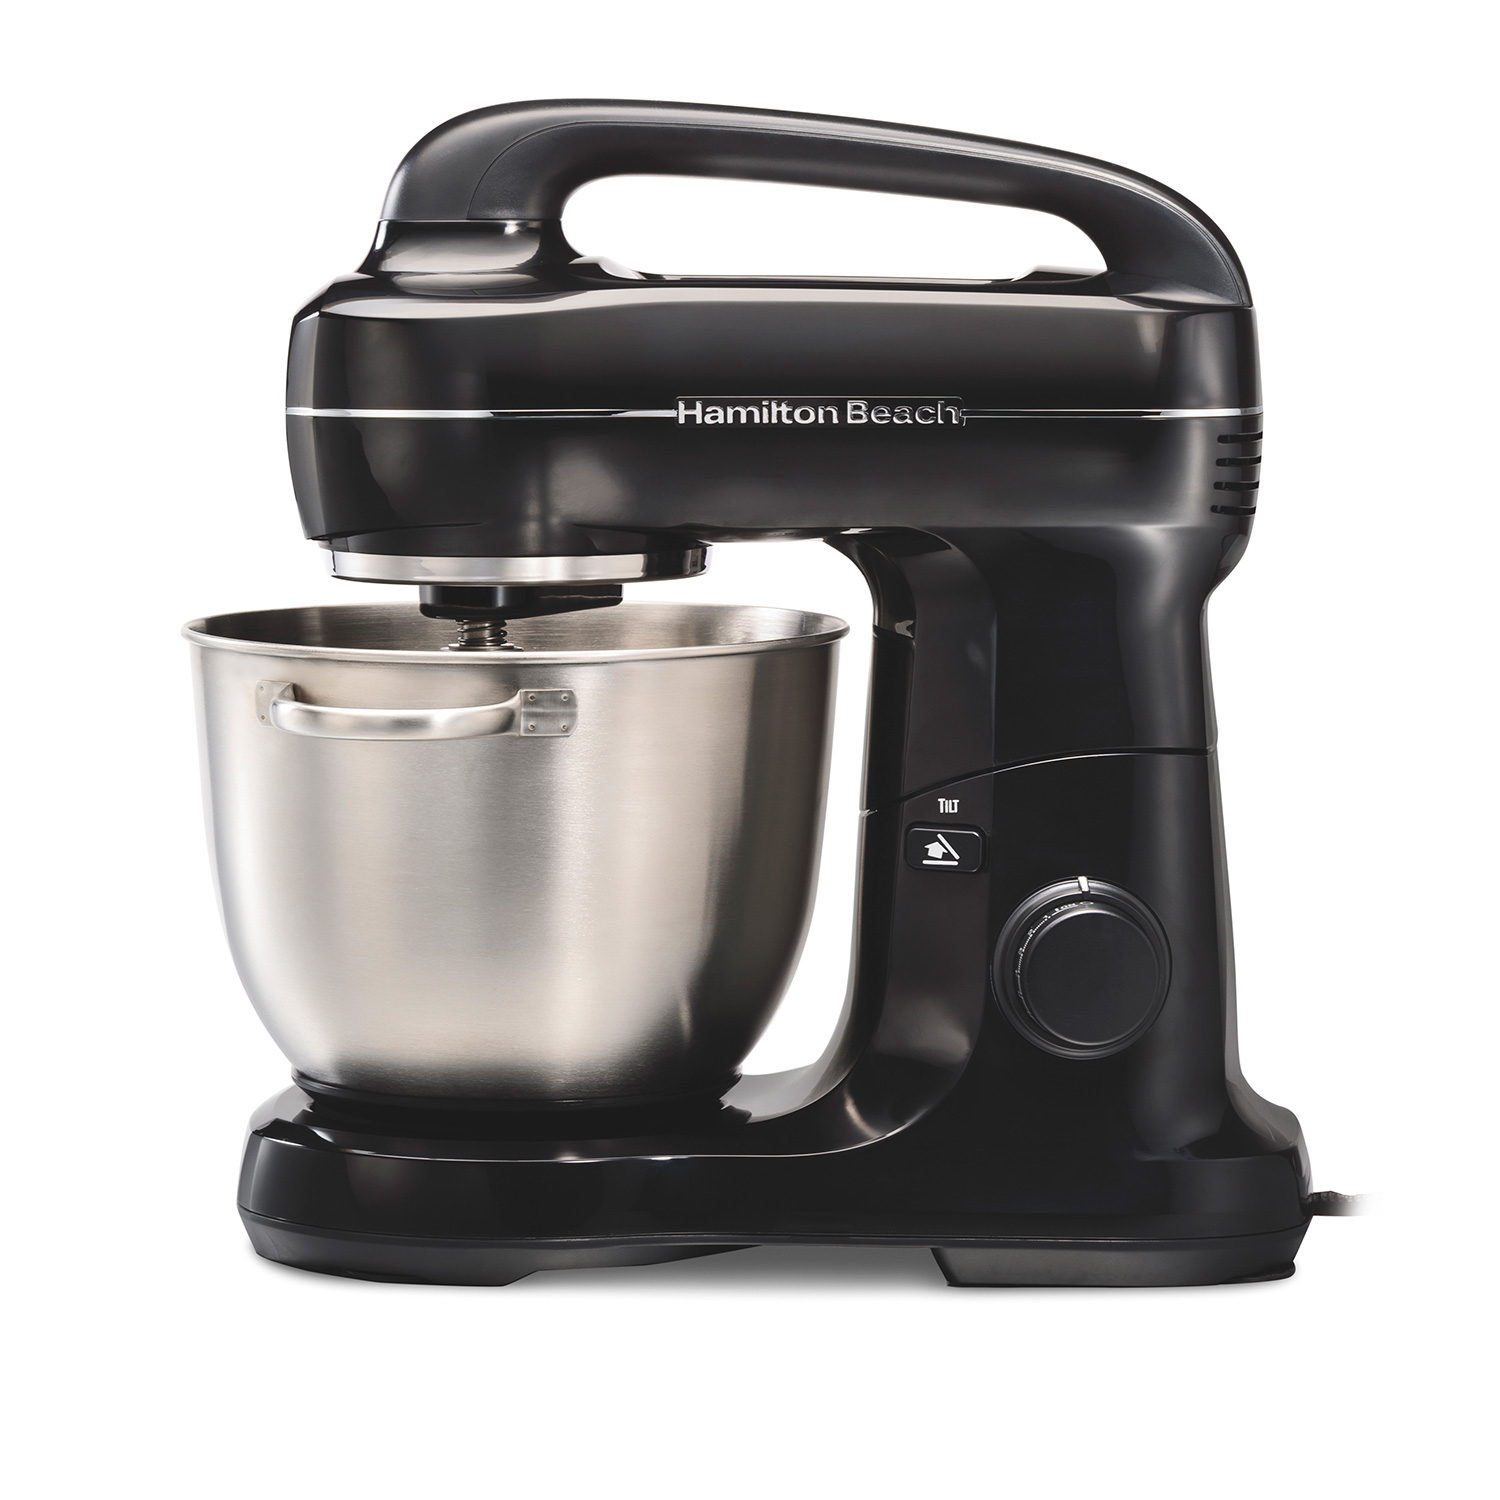 hamilton beach 7 speed stand mixer black 63391. Black Bedroom Furniture Sets. Home Design Ideas